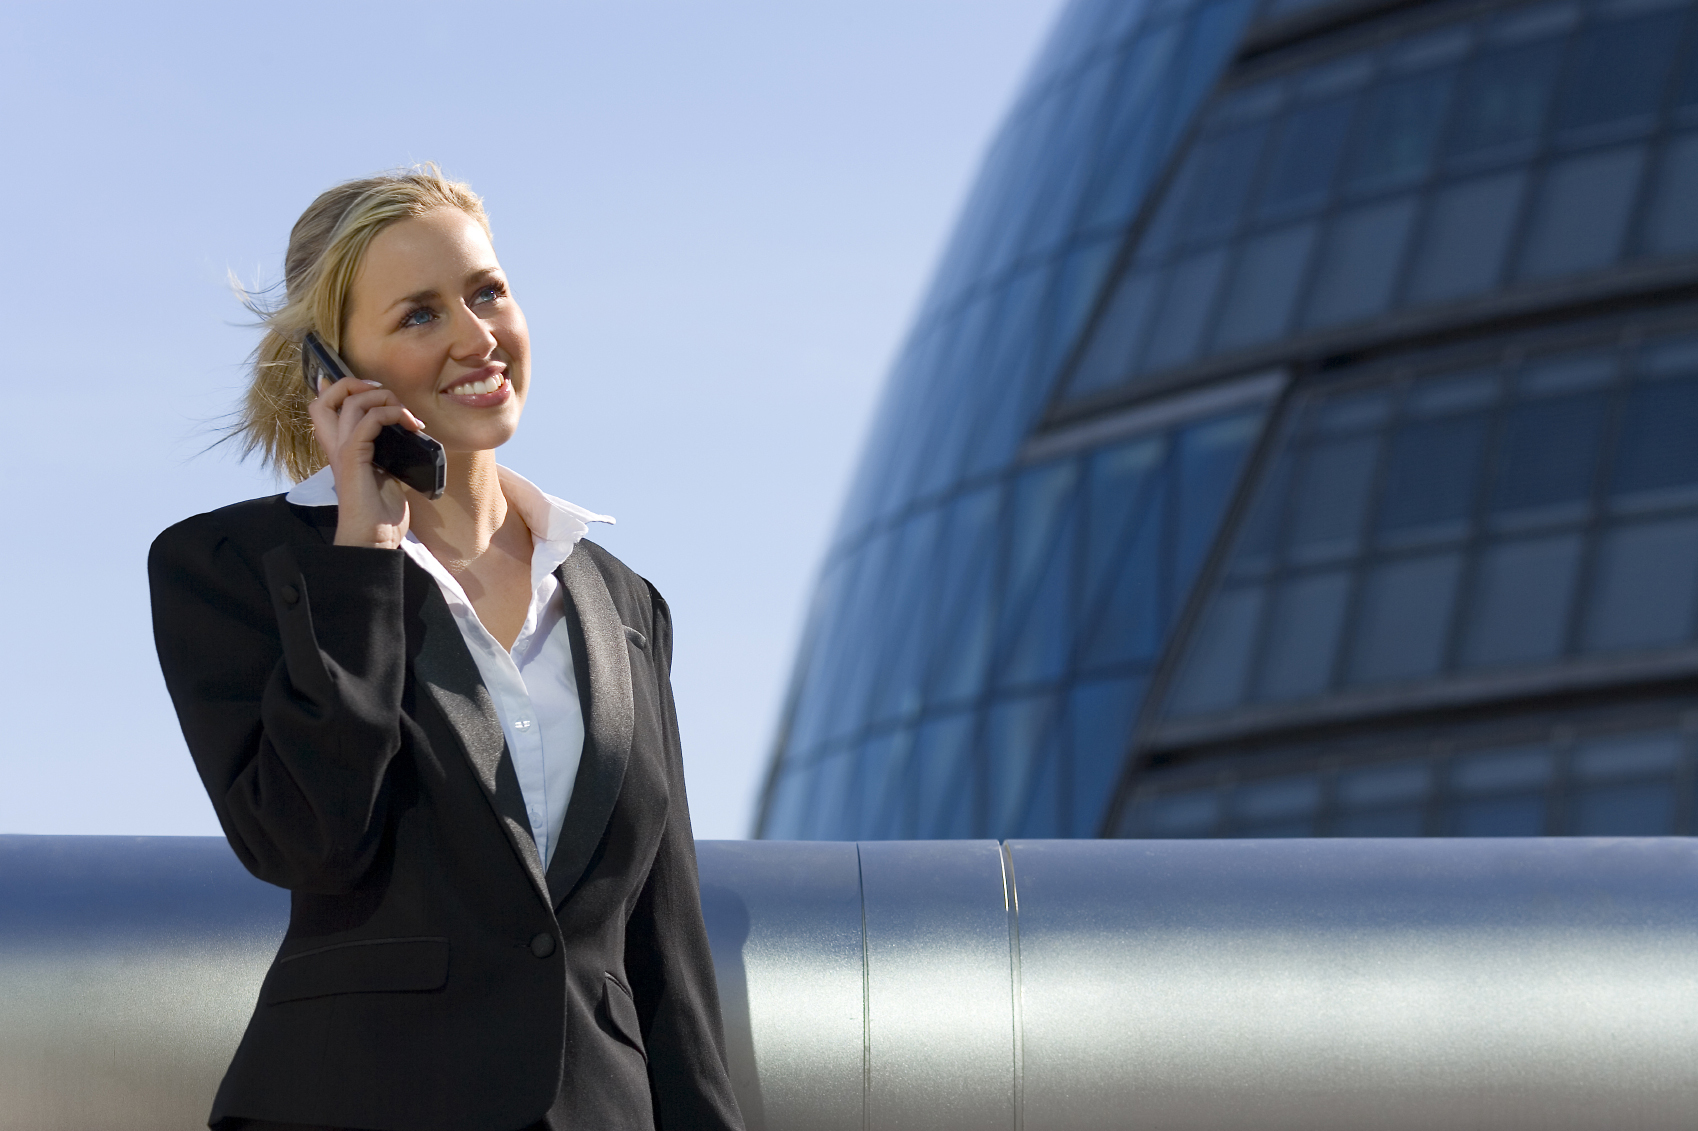 A beautiful young blonde executive using a mobile phone in a hi-tech surrounding.